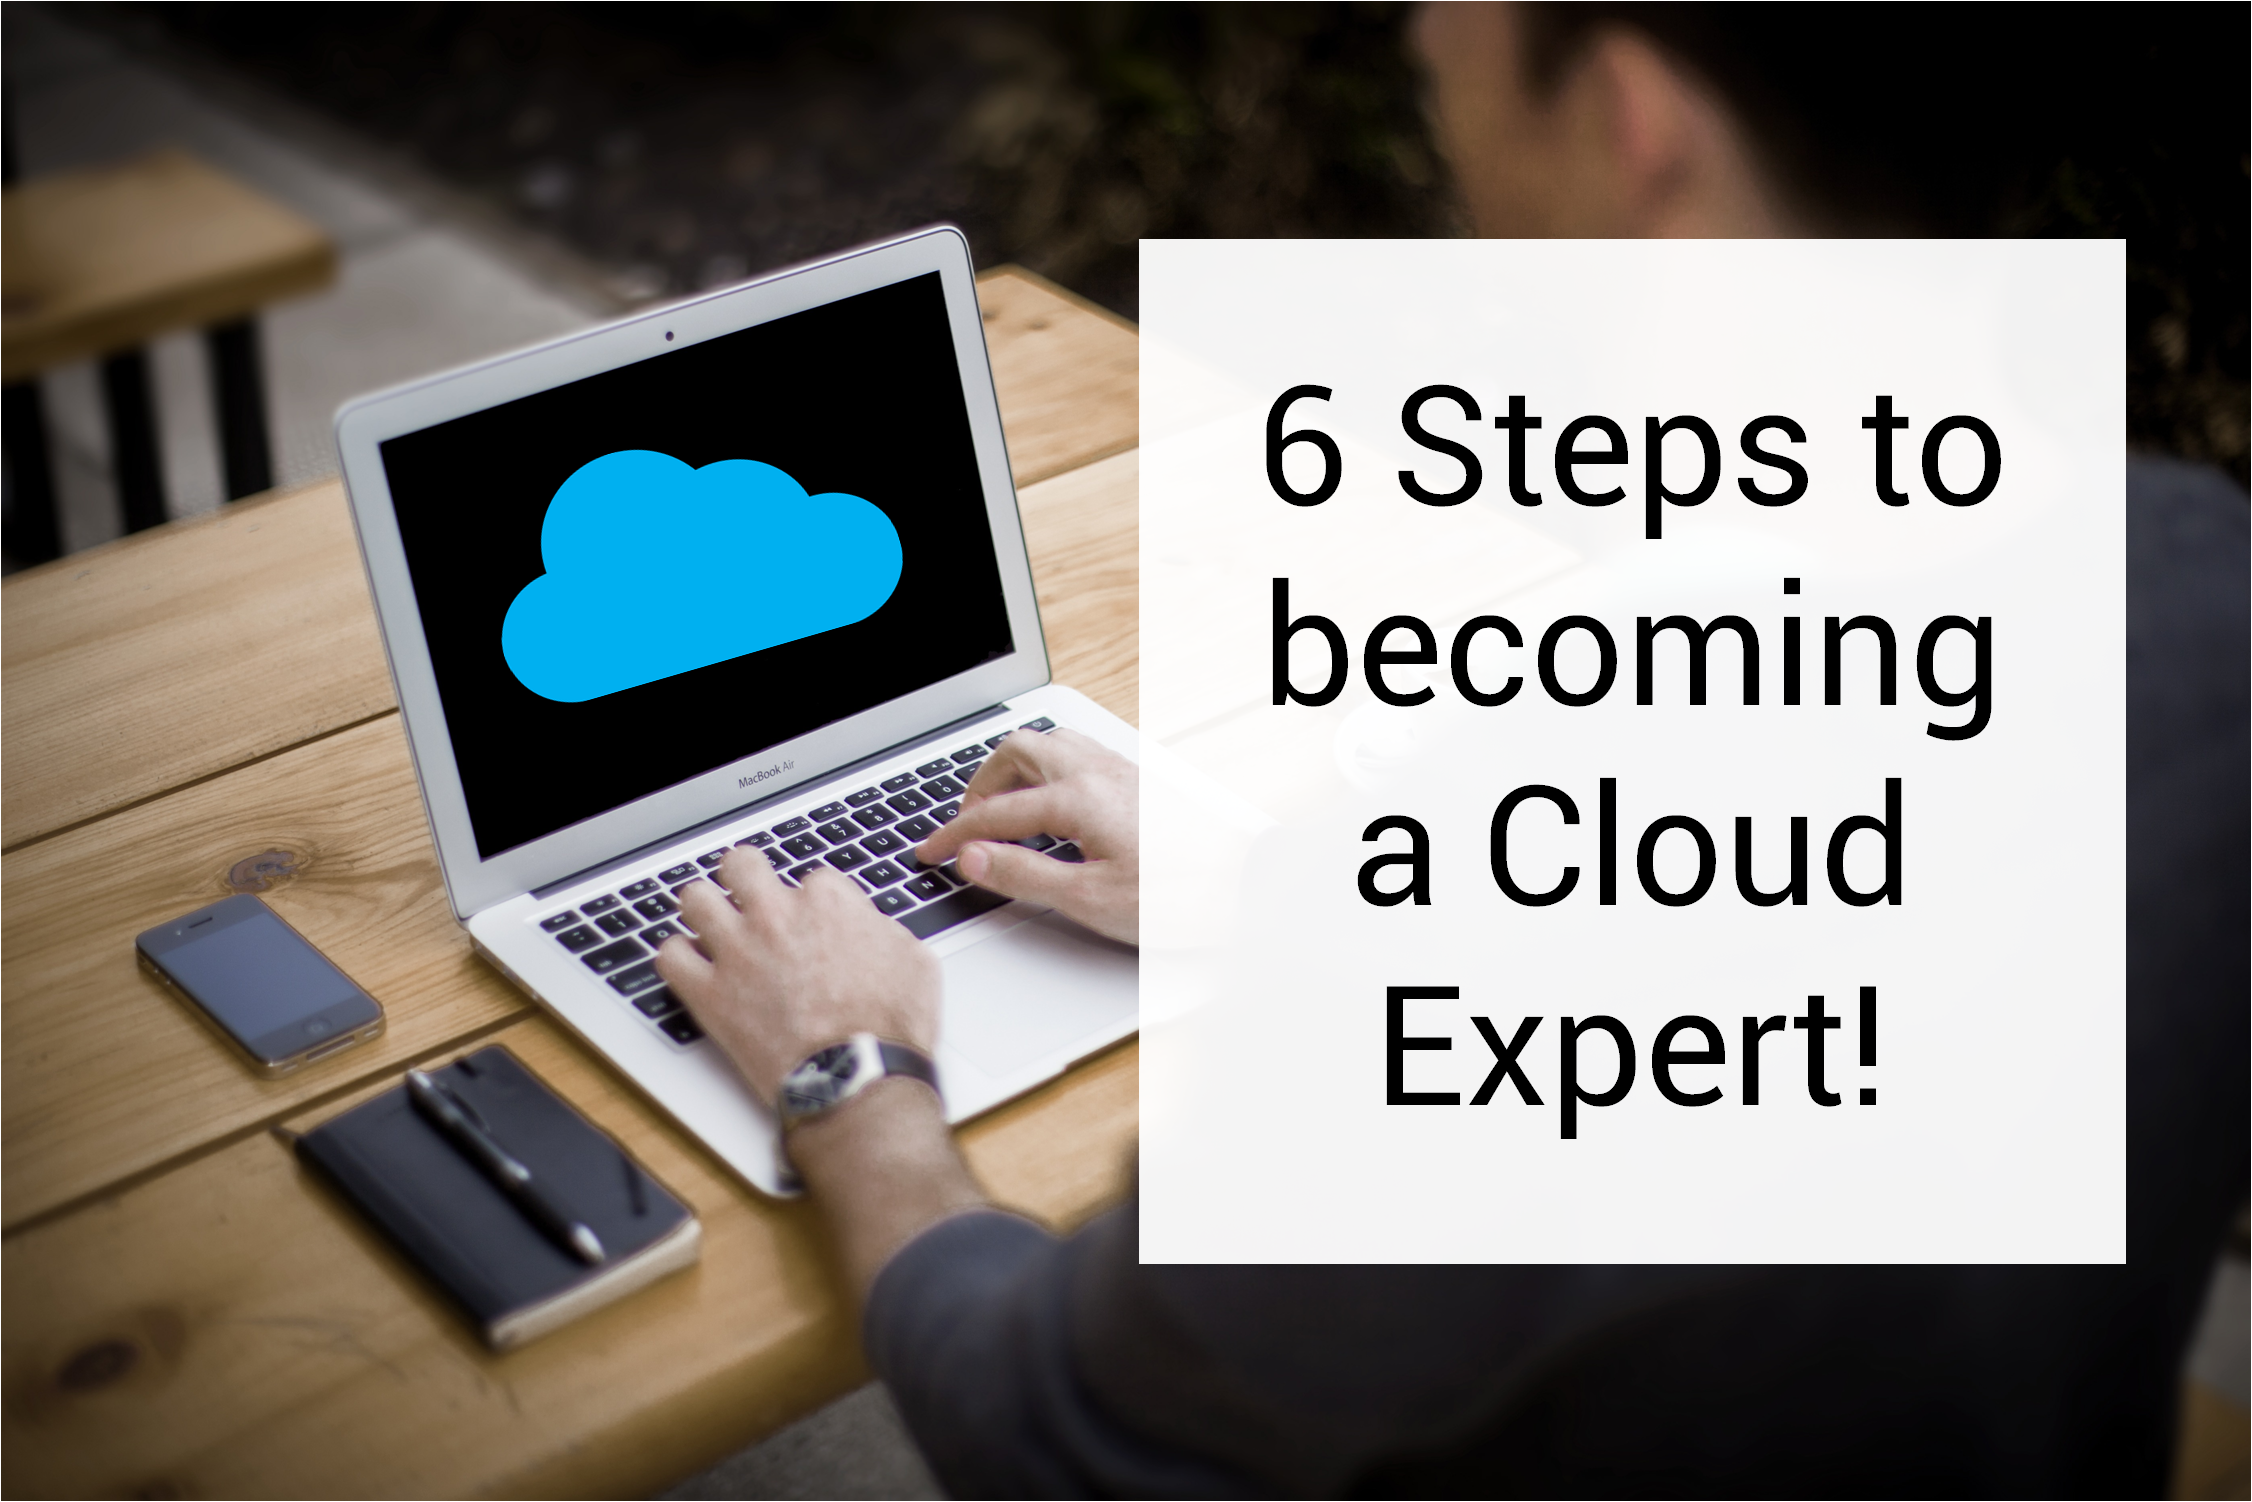 6 Steps to becoming a Cloud Expert! - Image 1